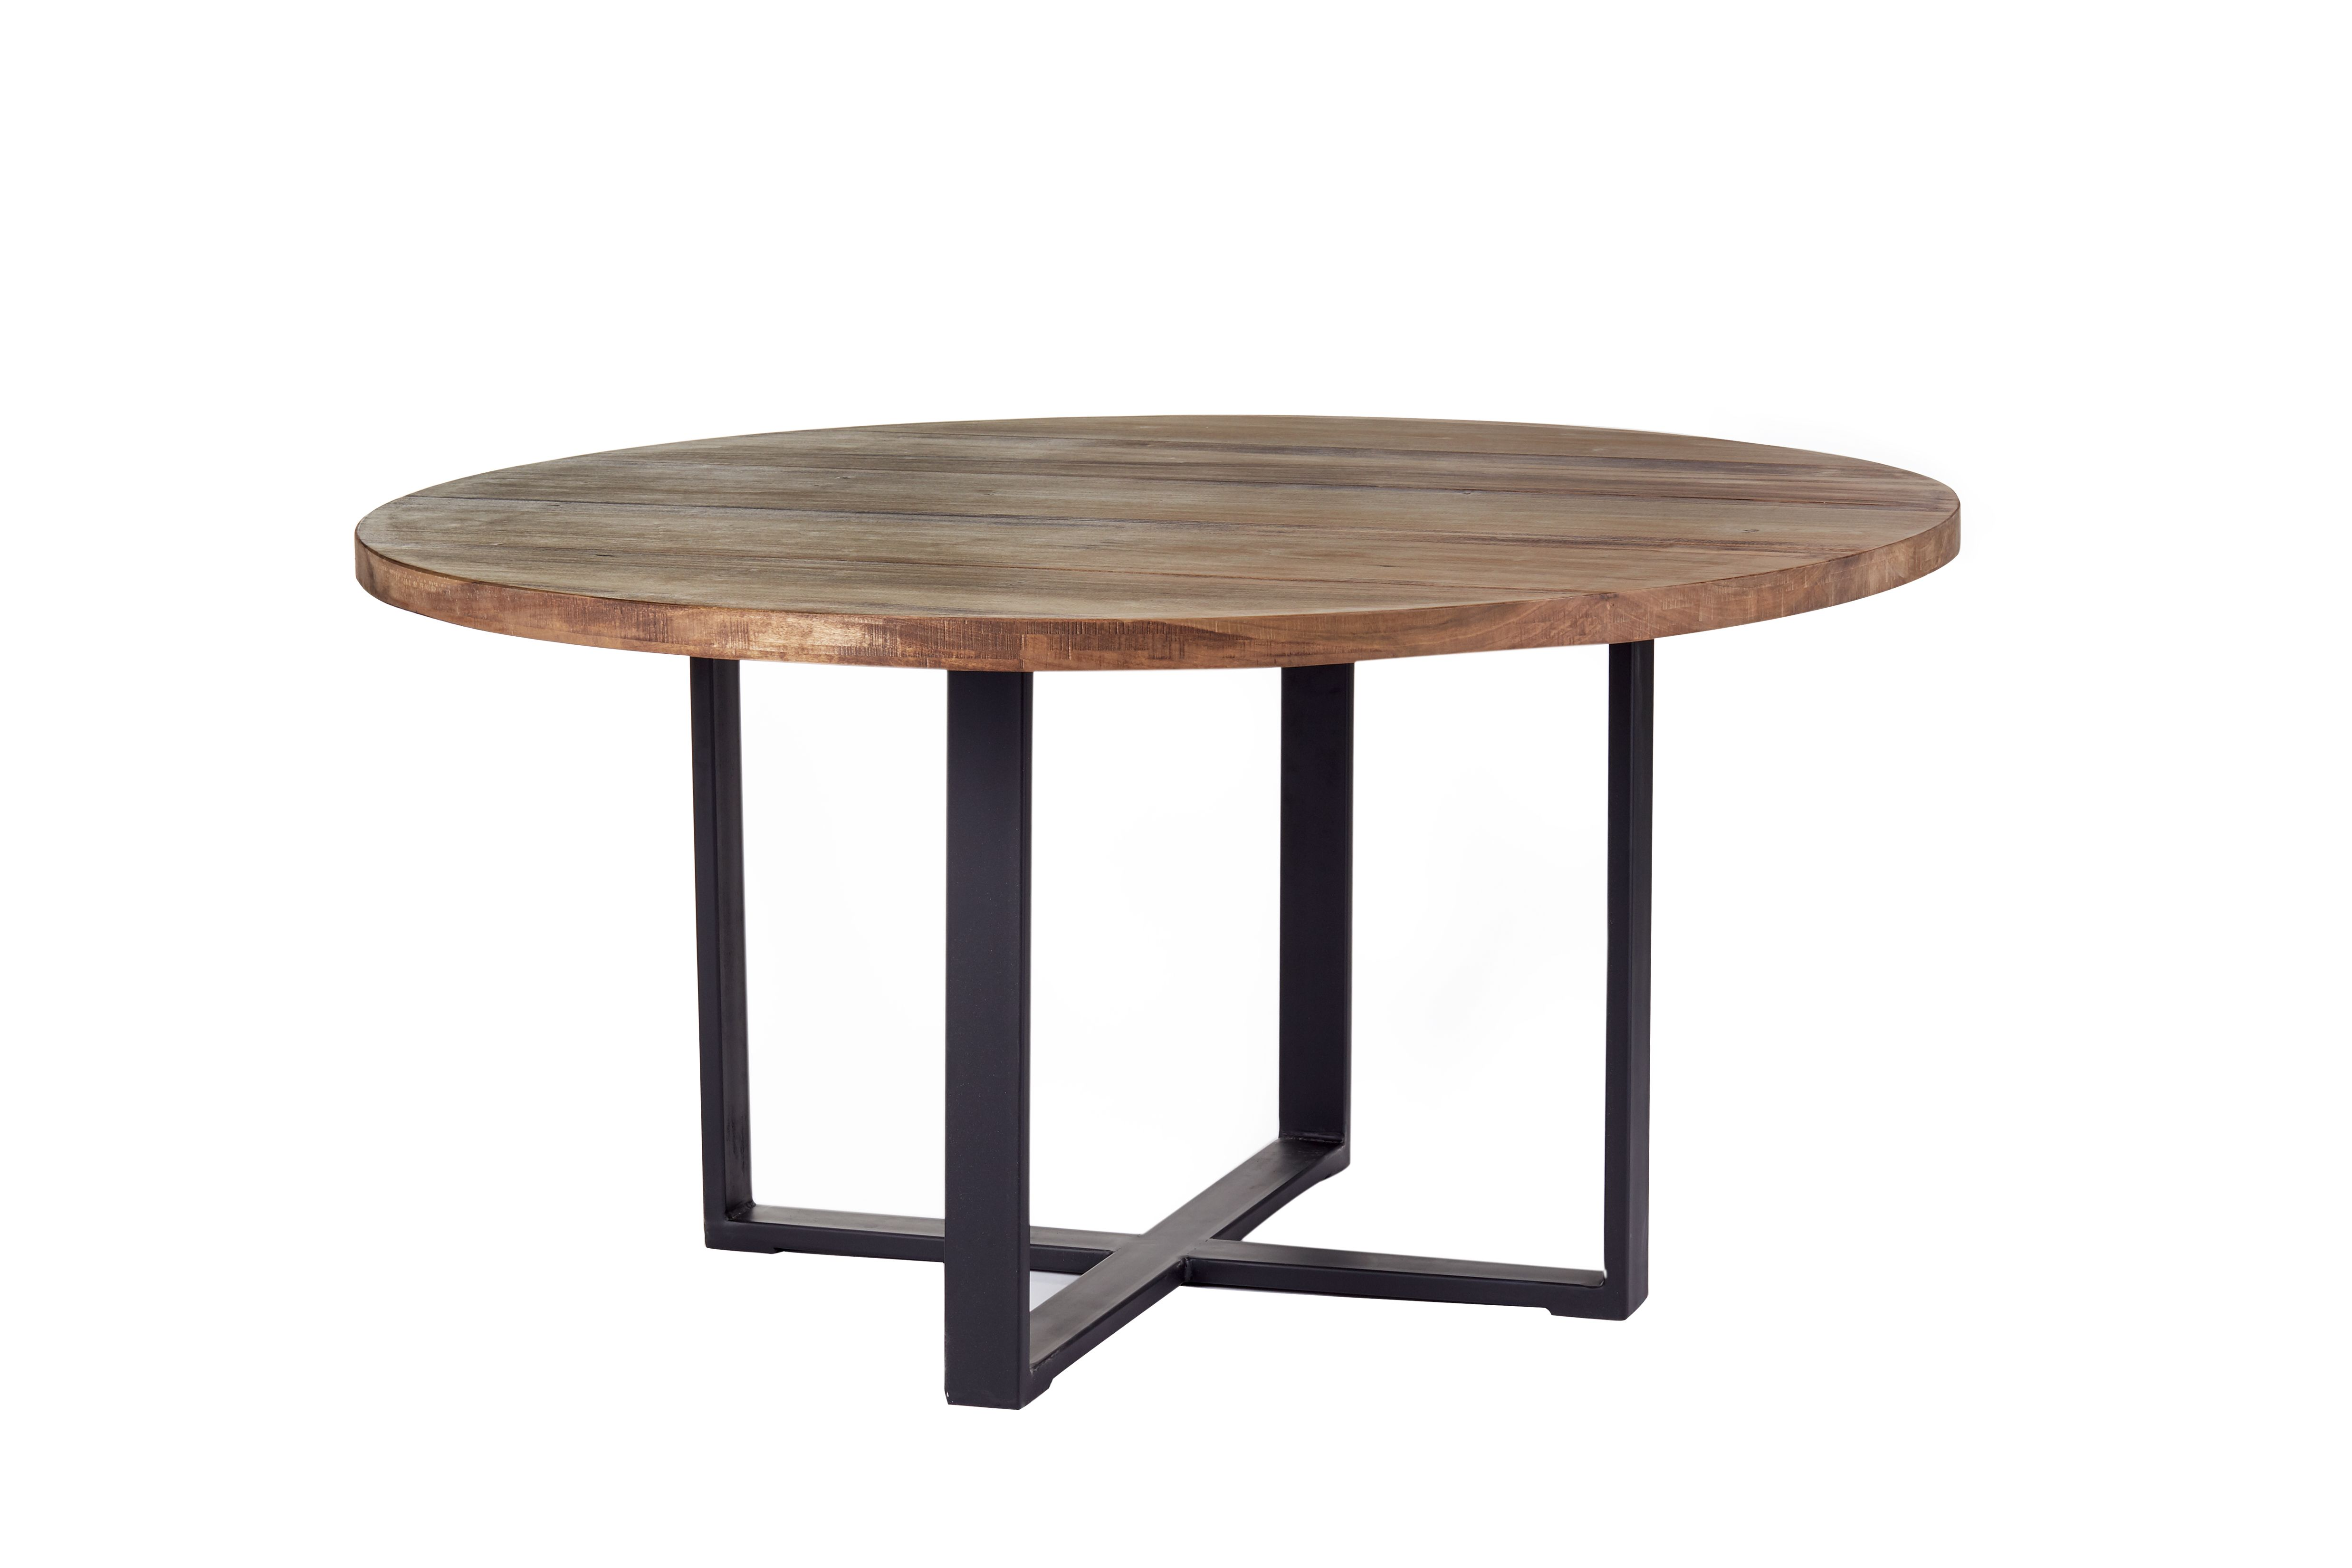 Custom industrial modern round dining table rustic dining for Modern round dining table